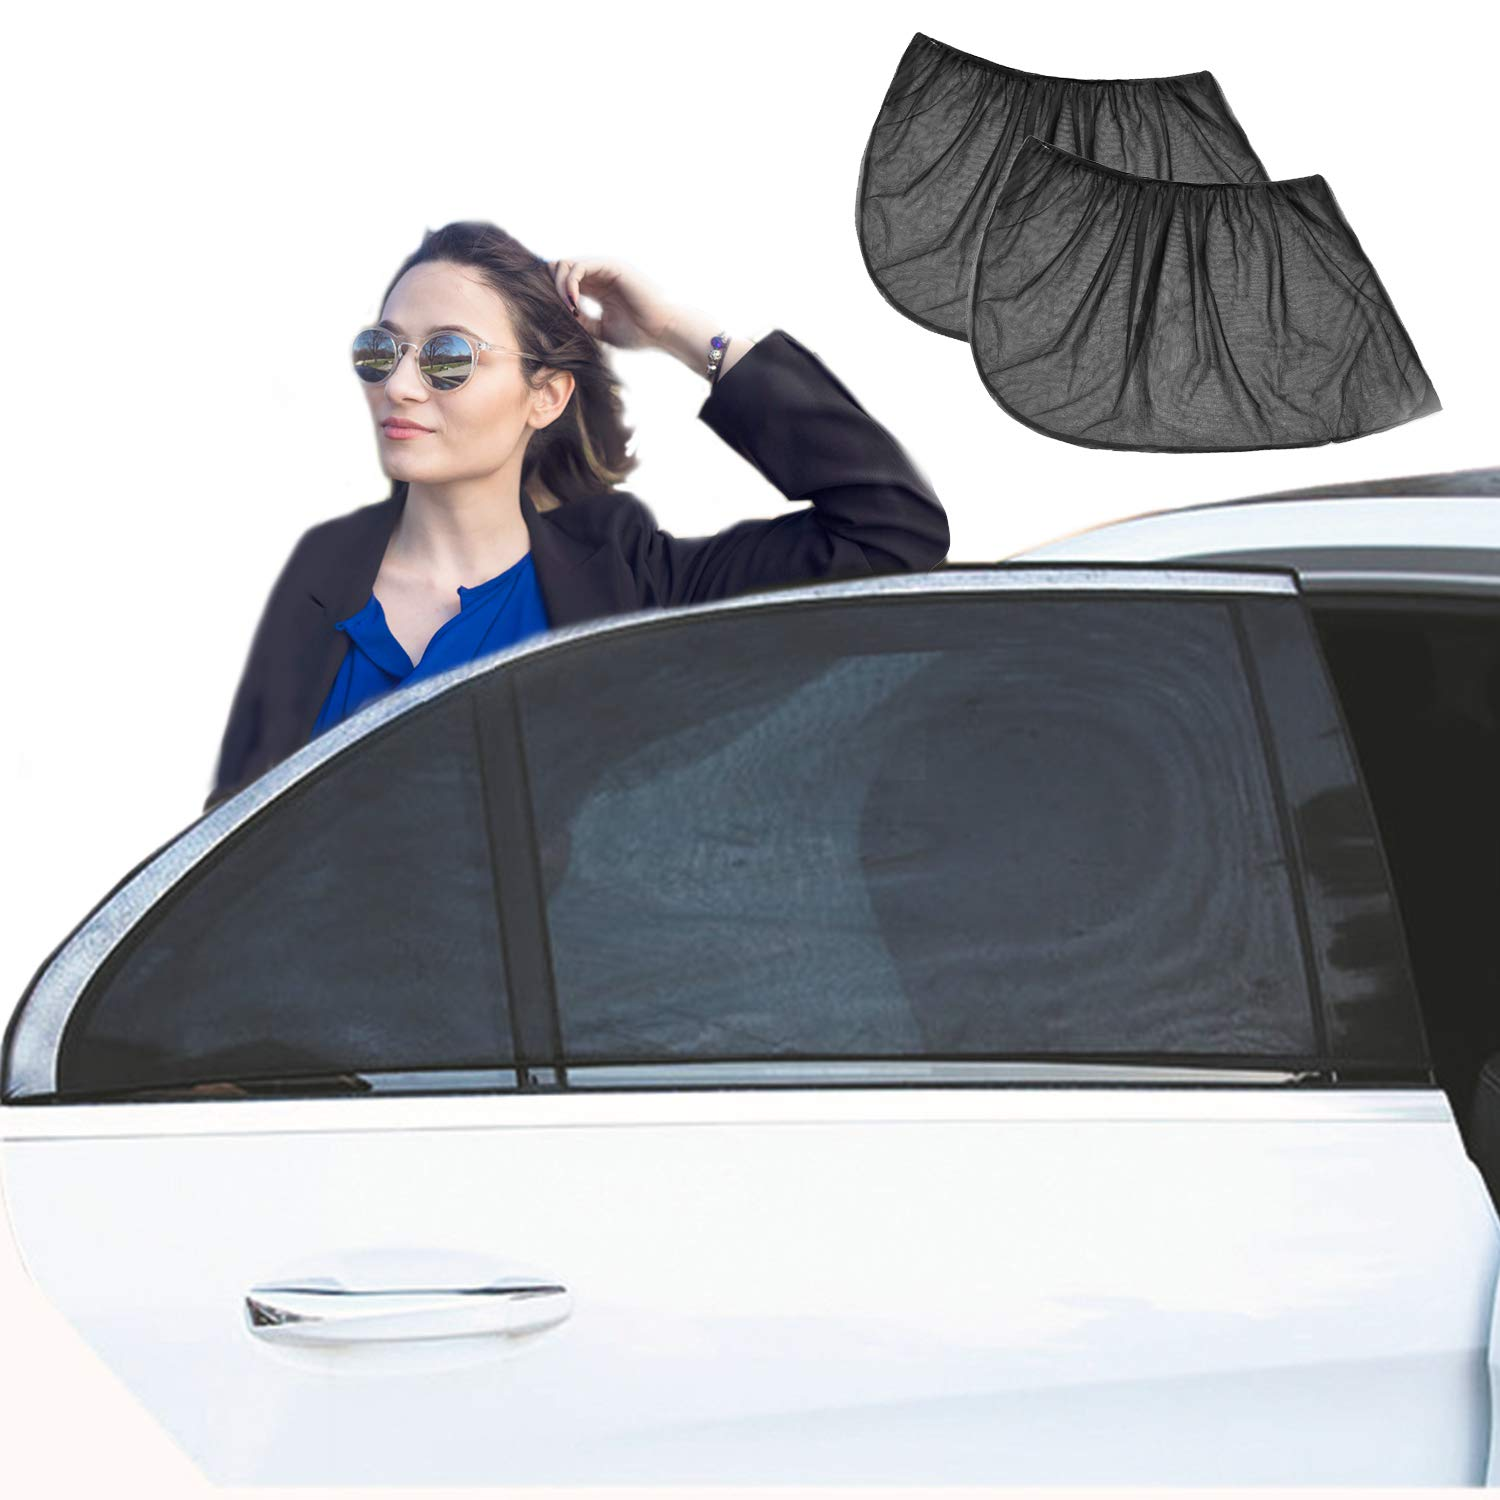 YHmall Car Sun Shades (2 pack) - Blocks UV Rays - Covers Rear Side Windows - Protects Baby Kids and Pets - Car Window Shades Fit Most Cars